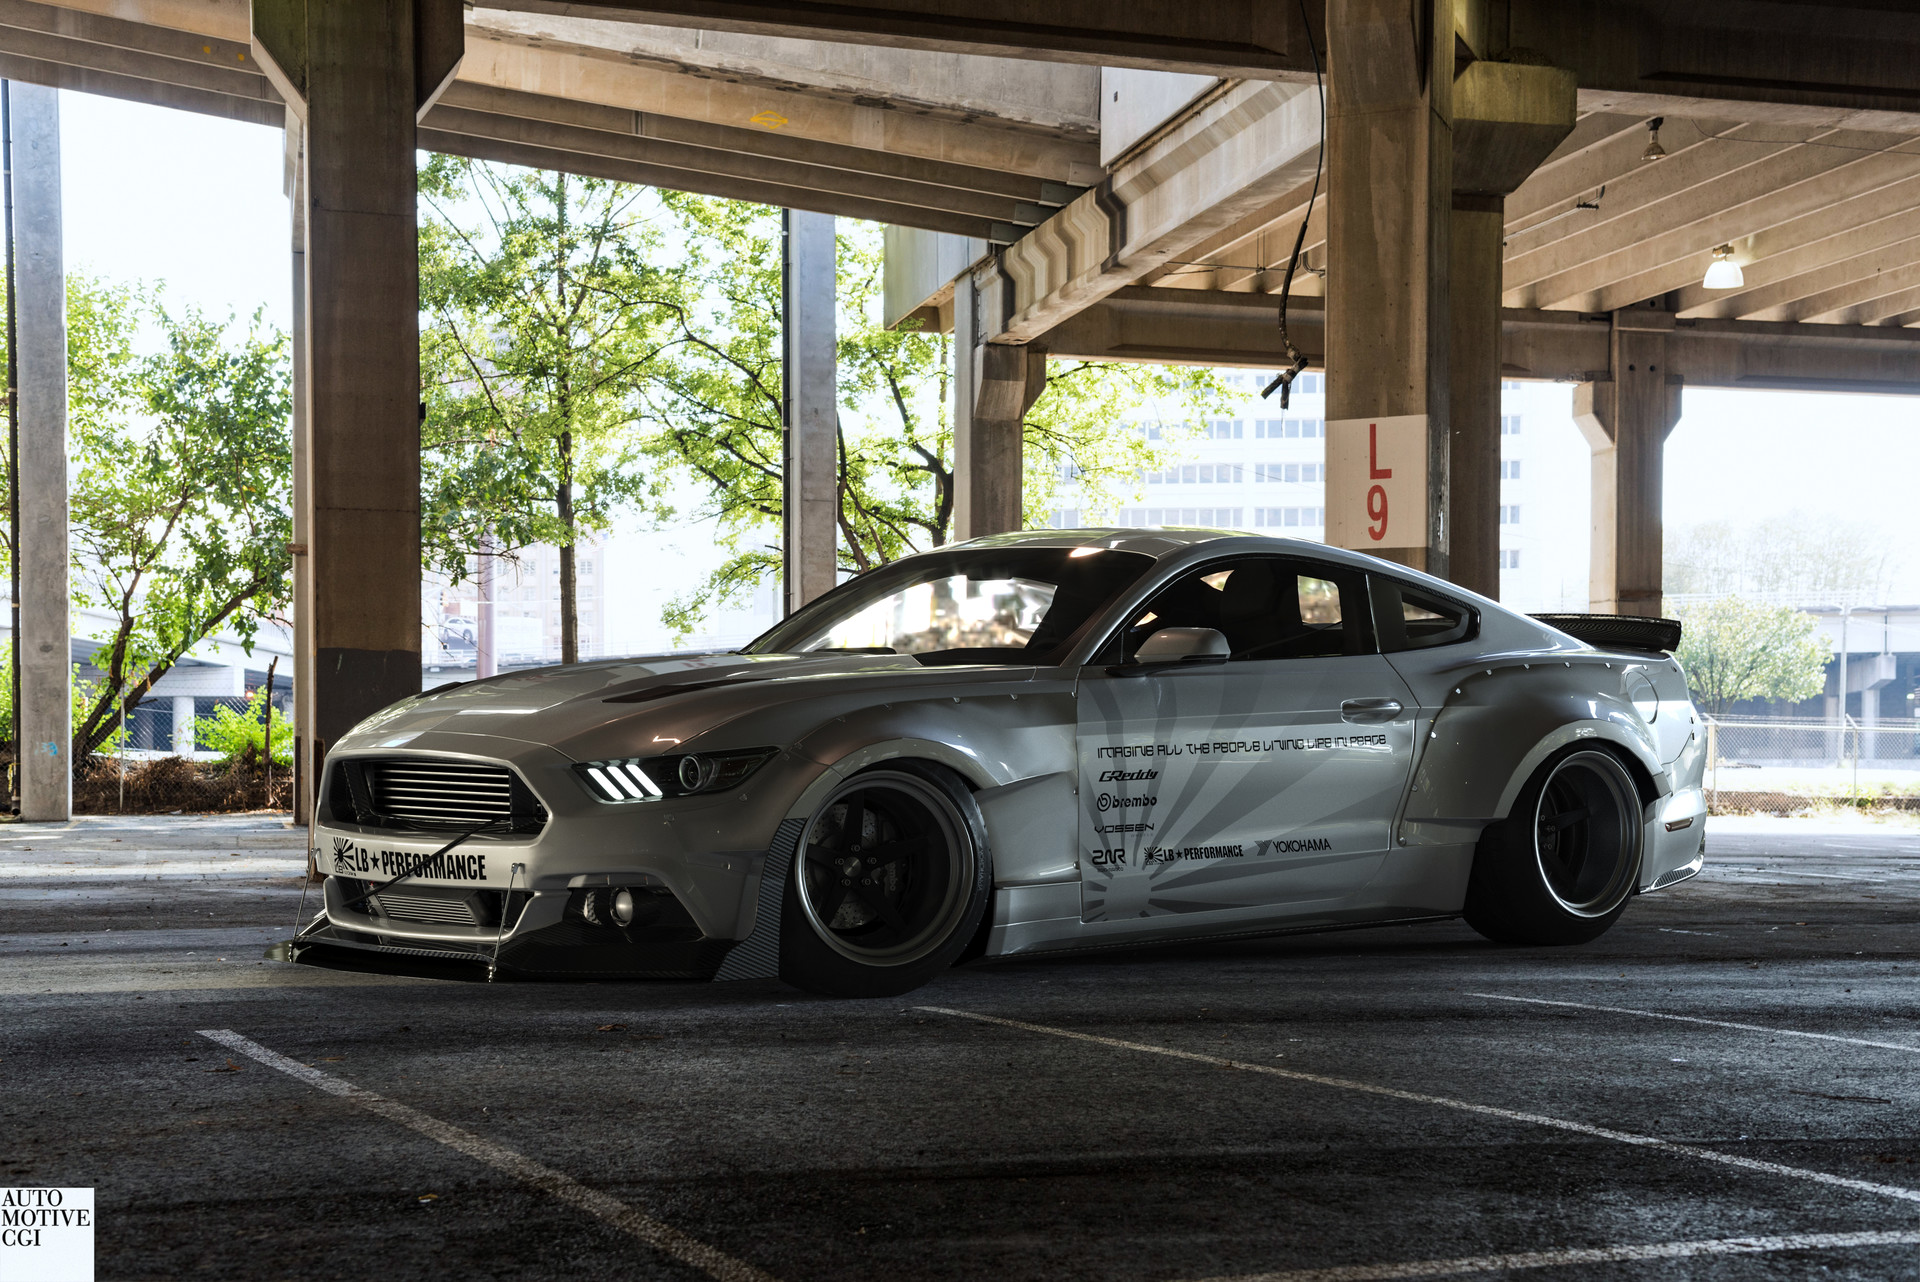 Zoki Nanco Nancorocks Znr3d Ford Mustang Liberty Walk